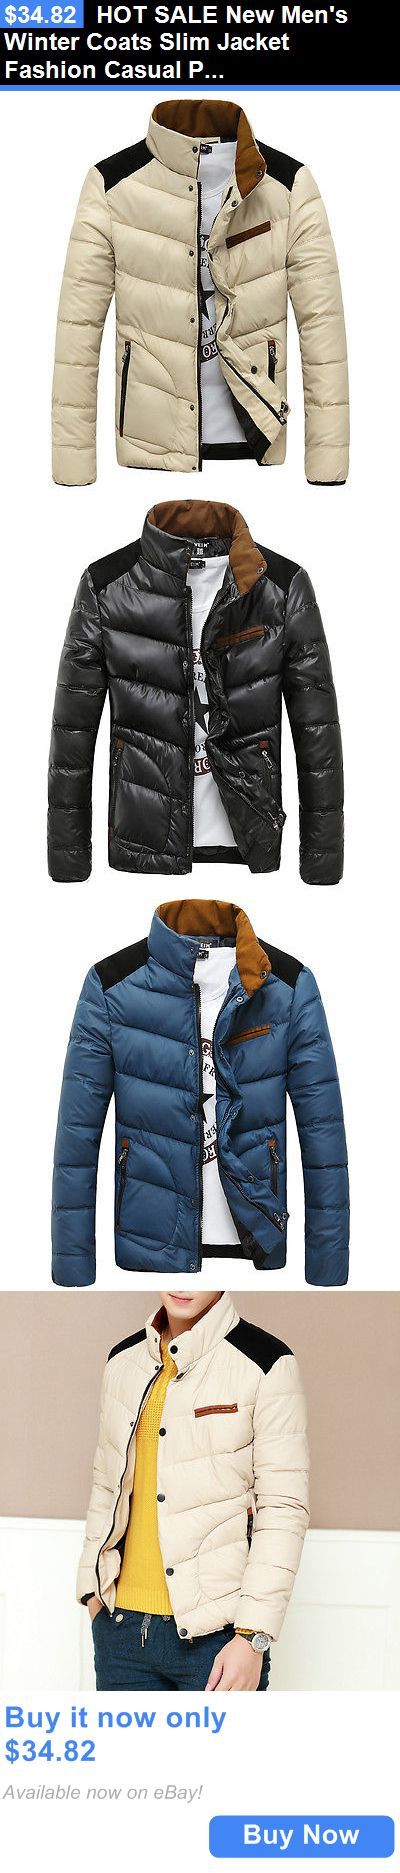 Men Coats And Jackets: Hot Sale New Mens Winter Coats Slim Jacket Fashion Casual Padded Collar Coat BUY IT NOW ONLY: $34.82